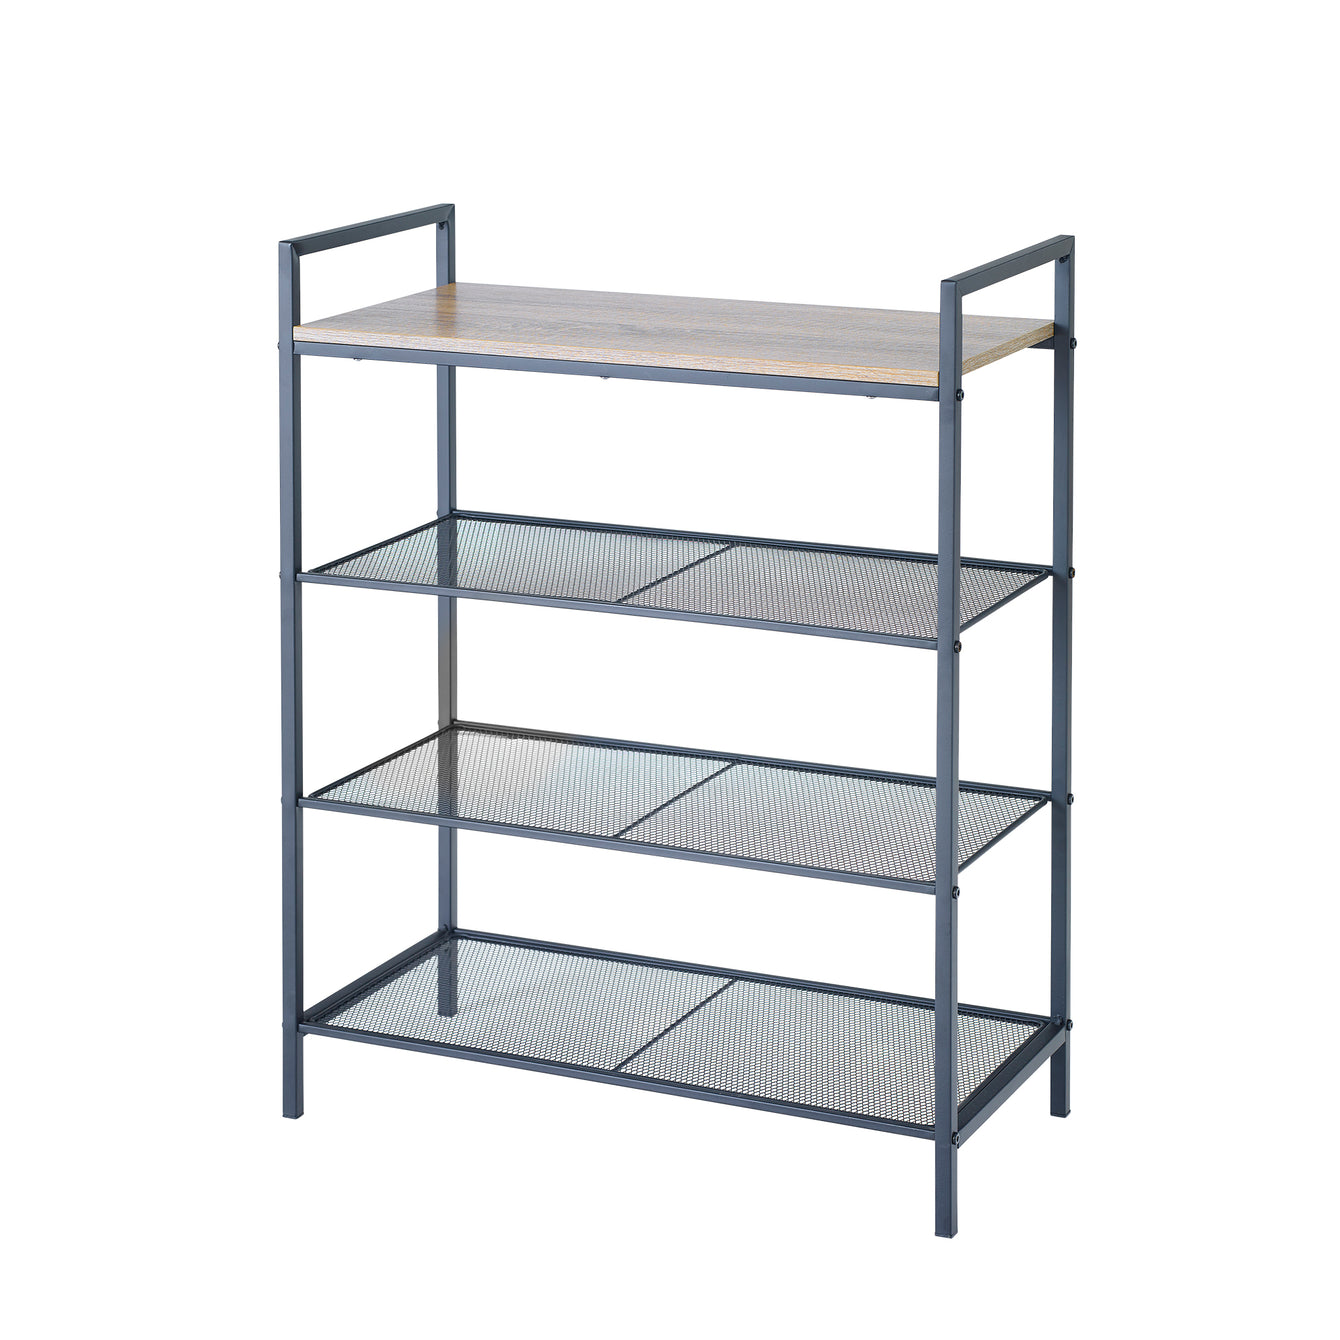 4-Tier Shelf Storage Unit with Wood Top – Style 5051